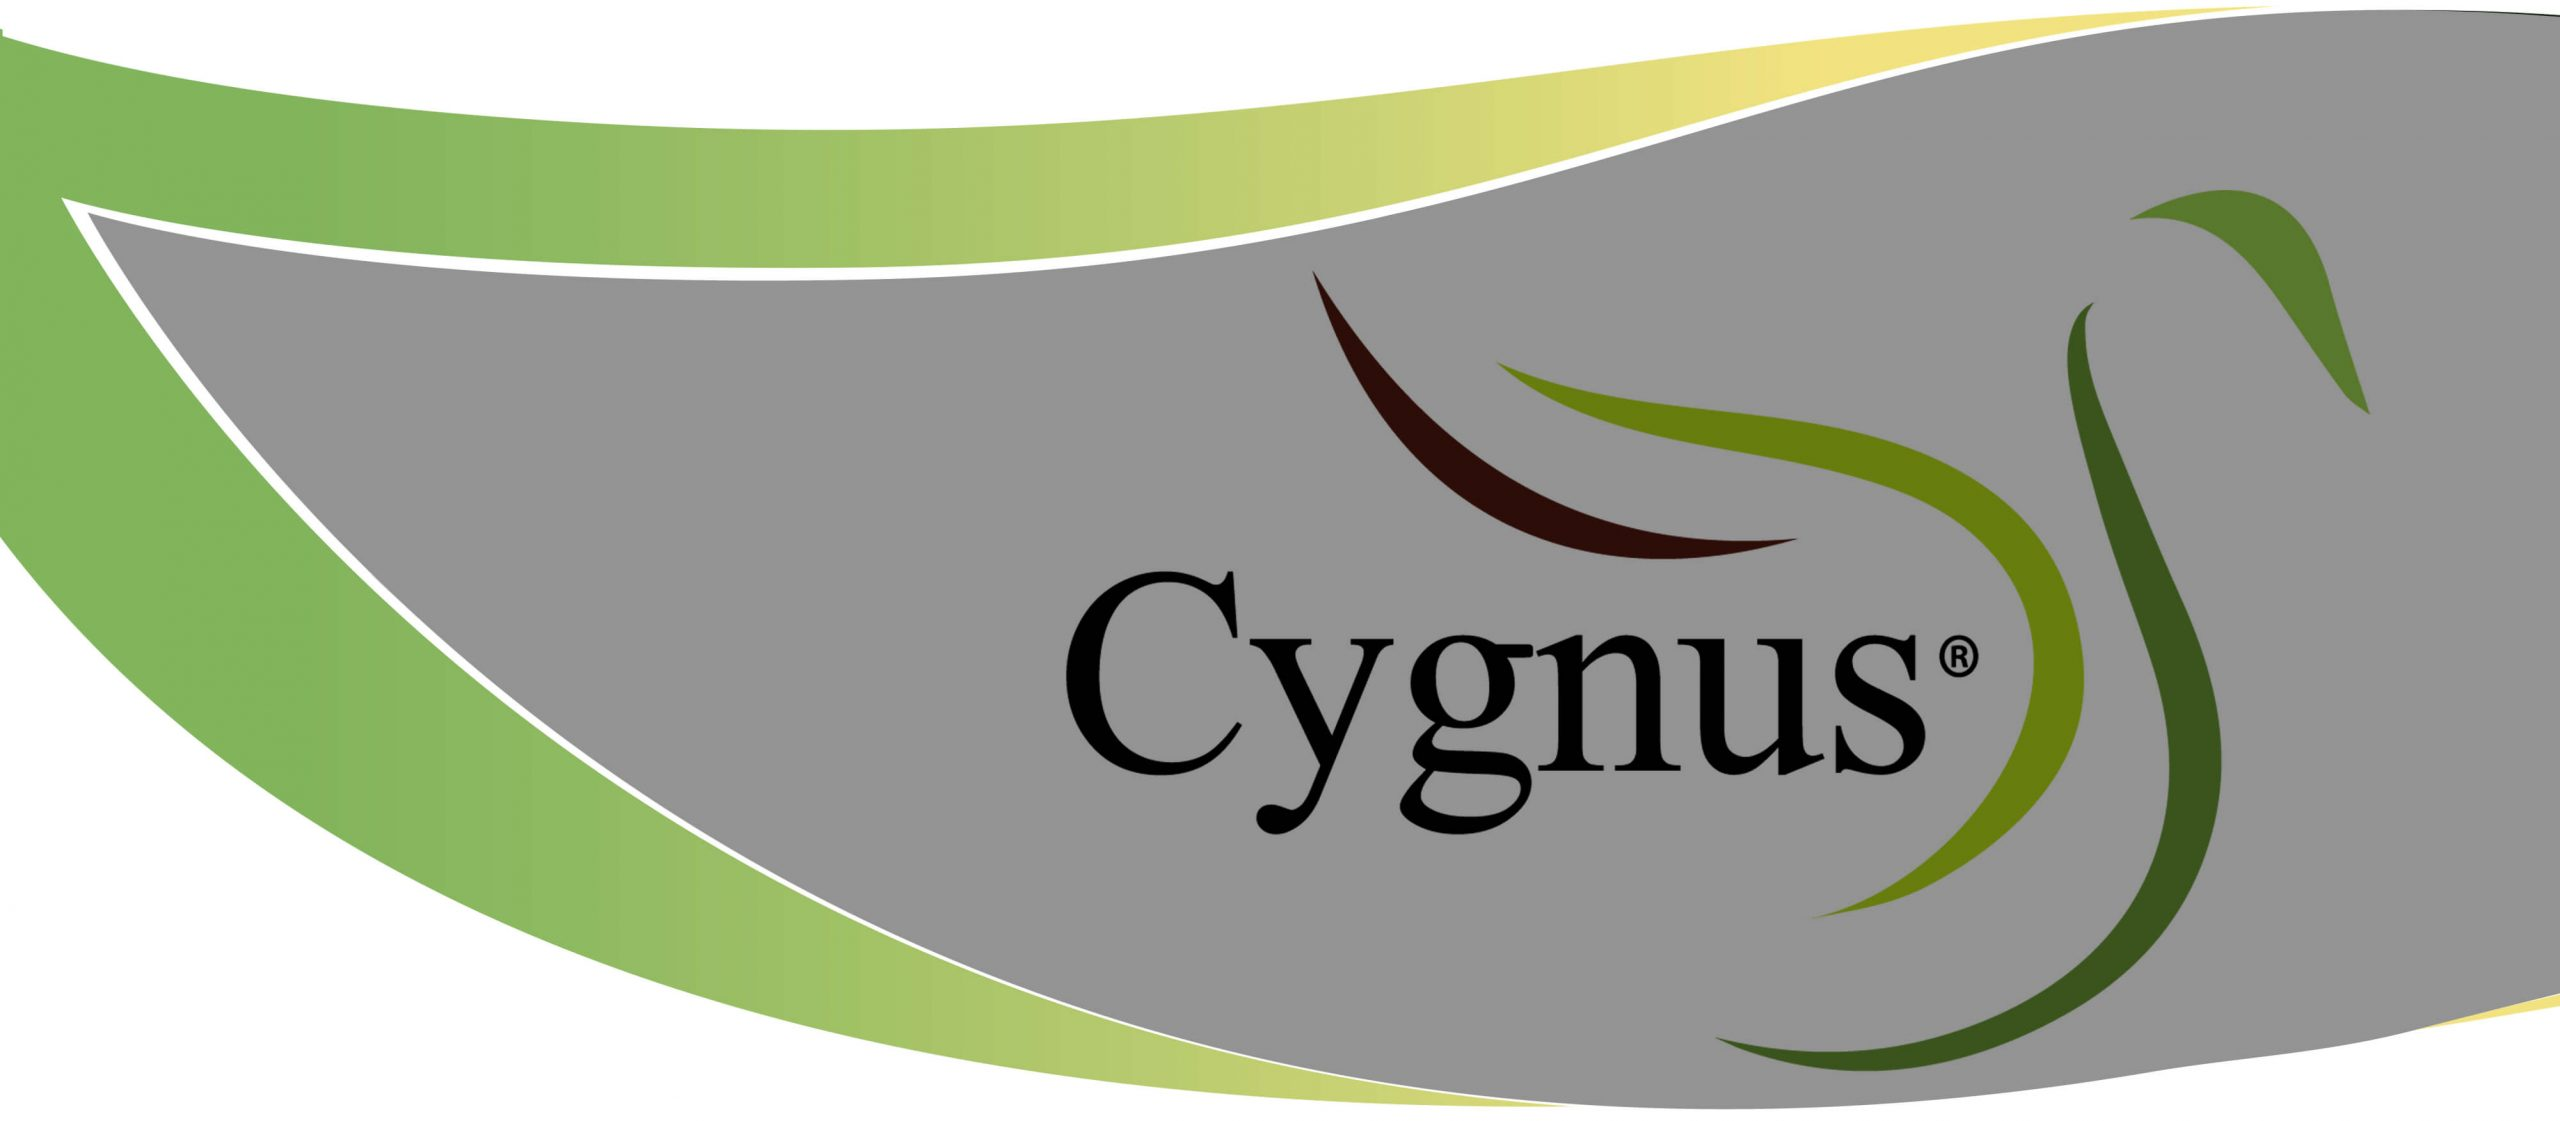 Home of the Cygnus®brand of materialsRead More